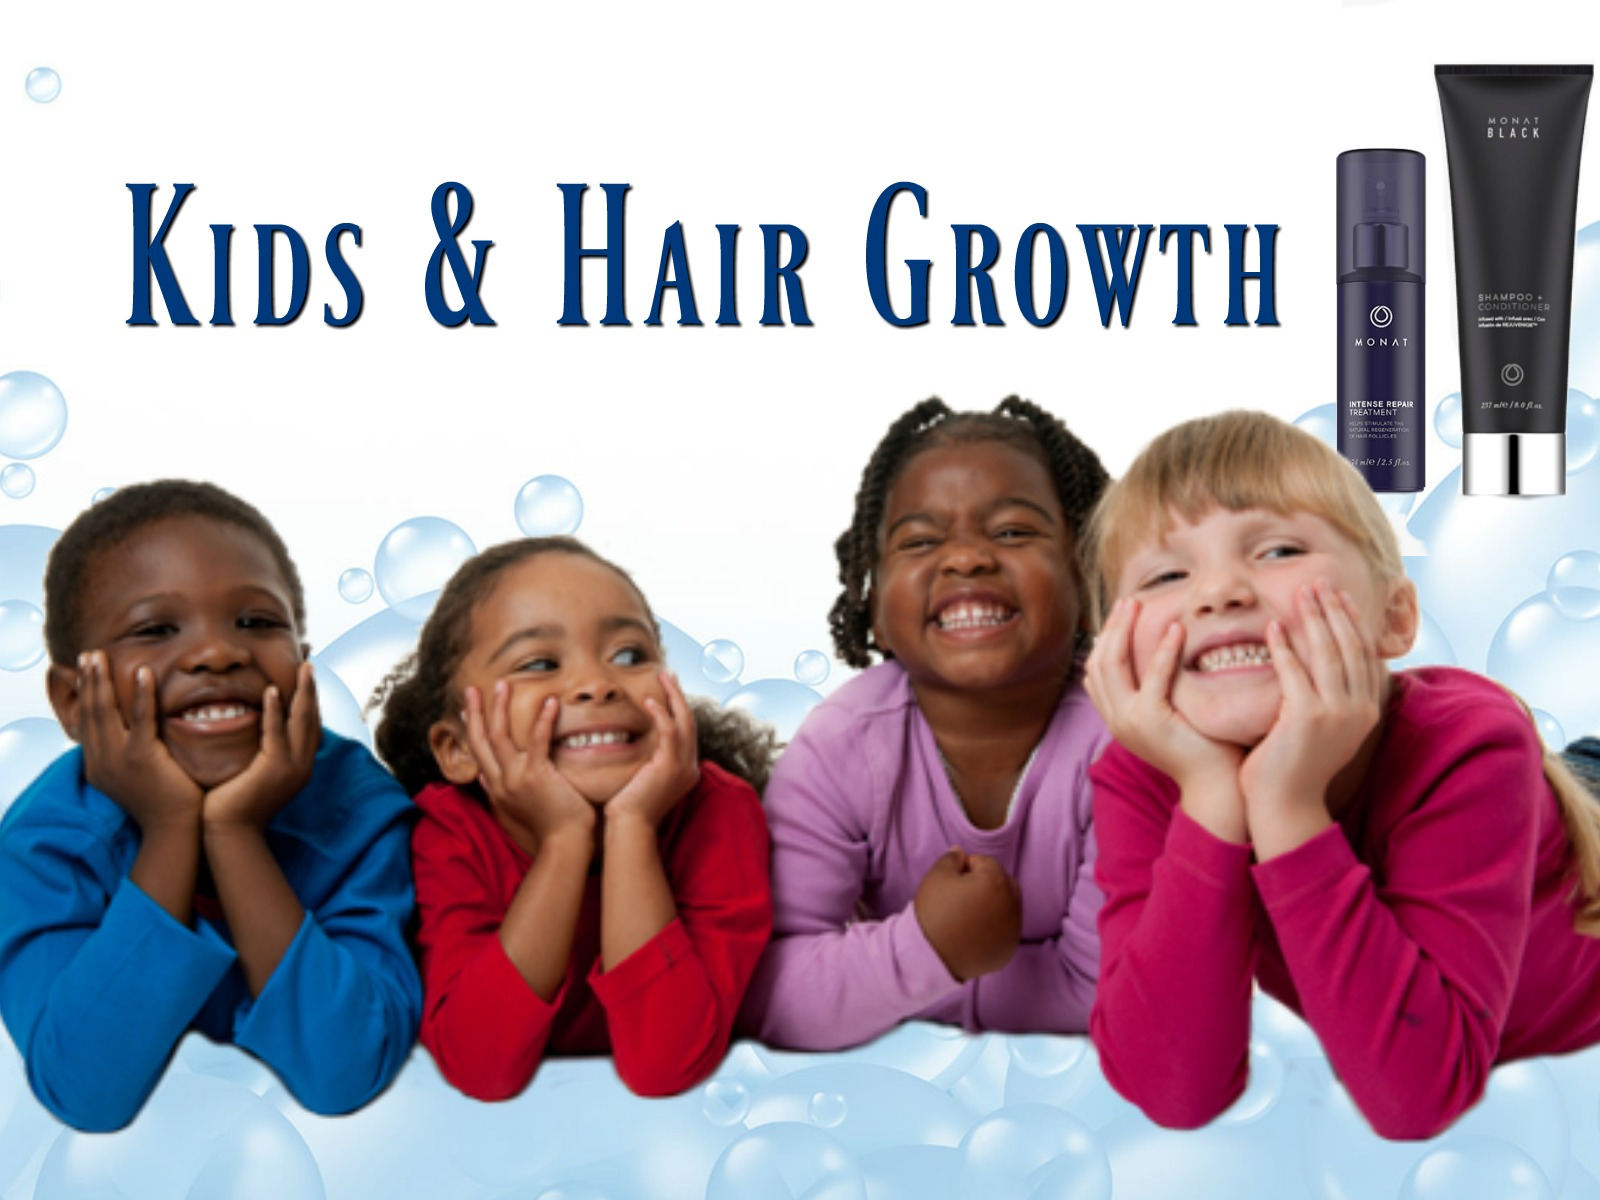 Kids & Hair Growth